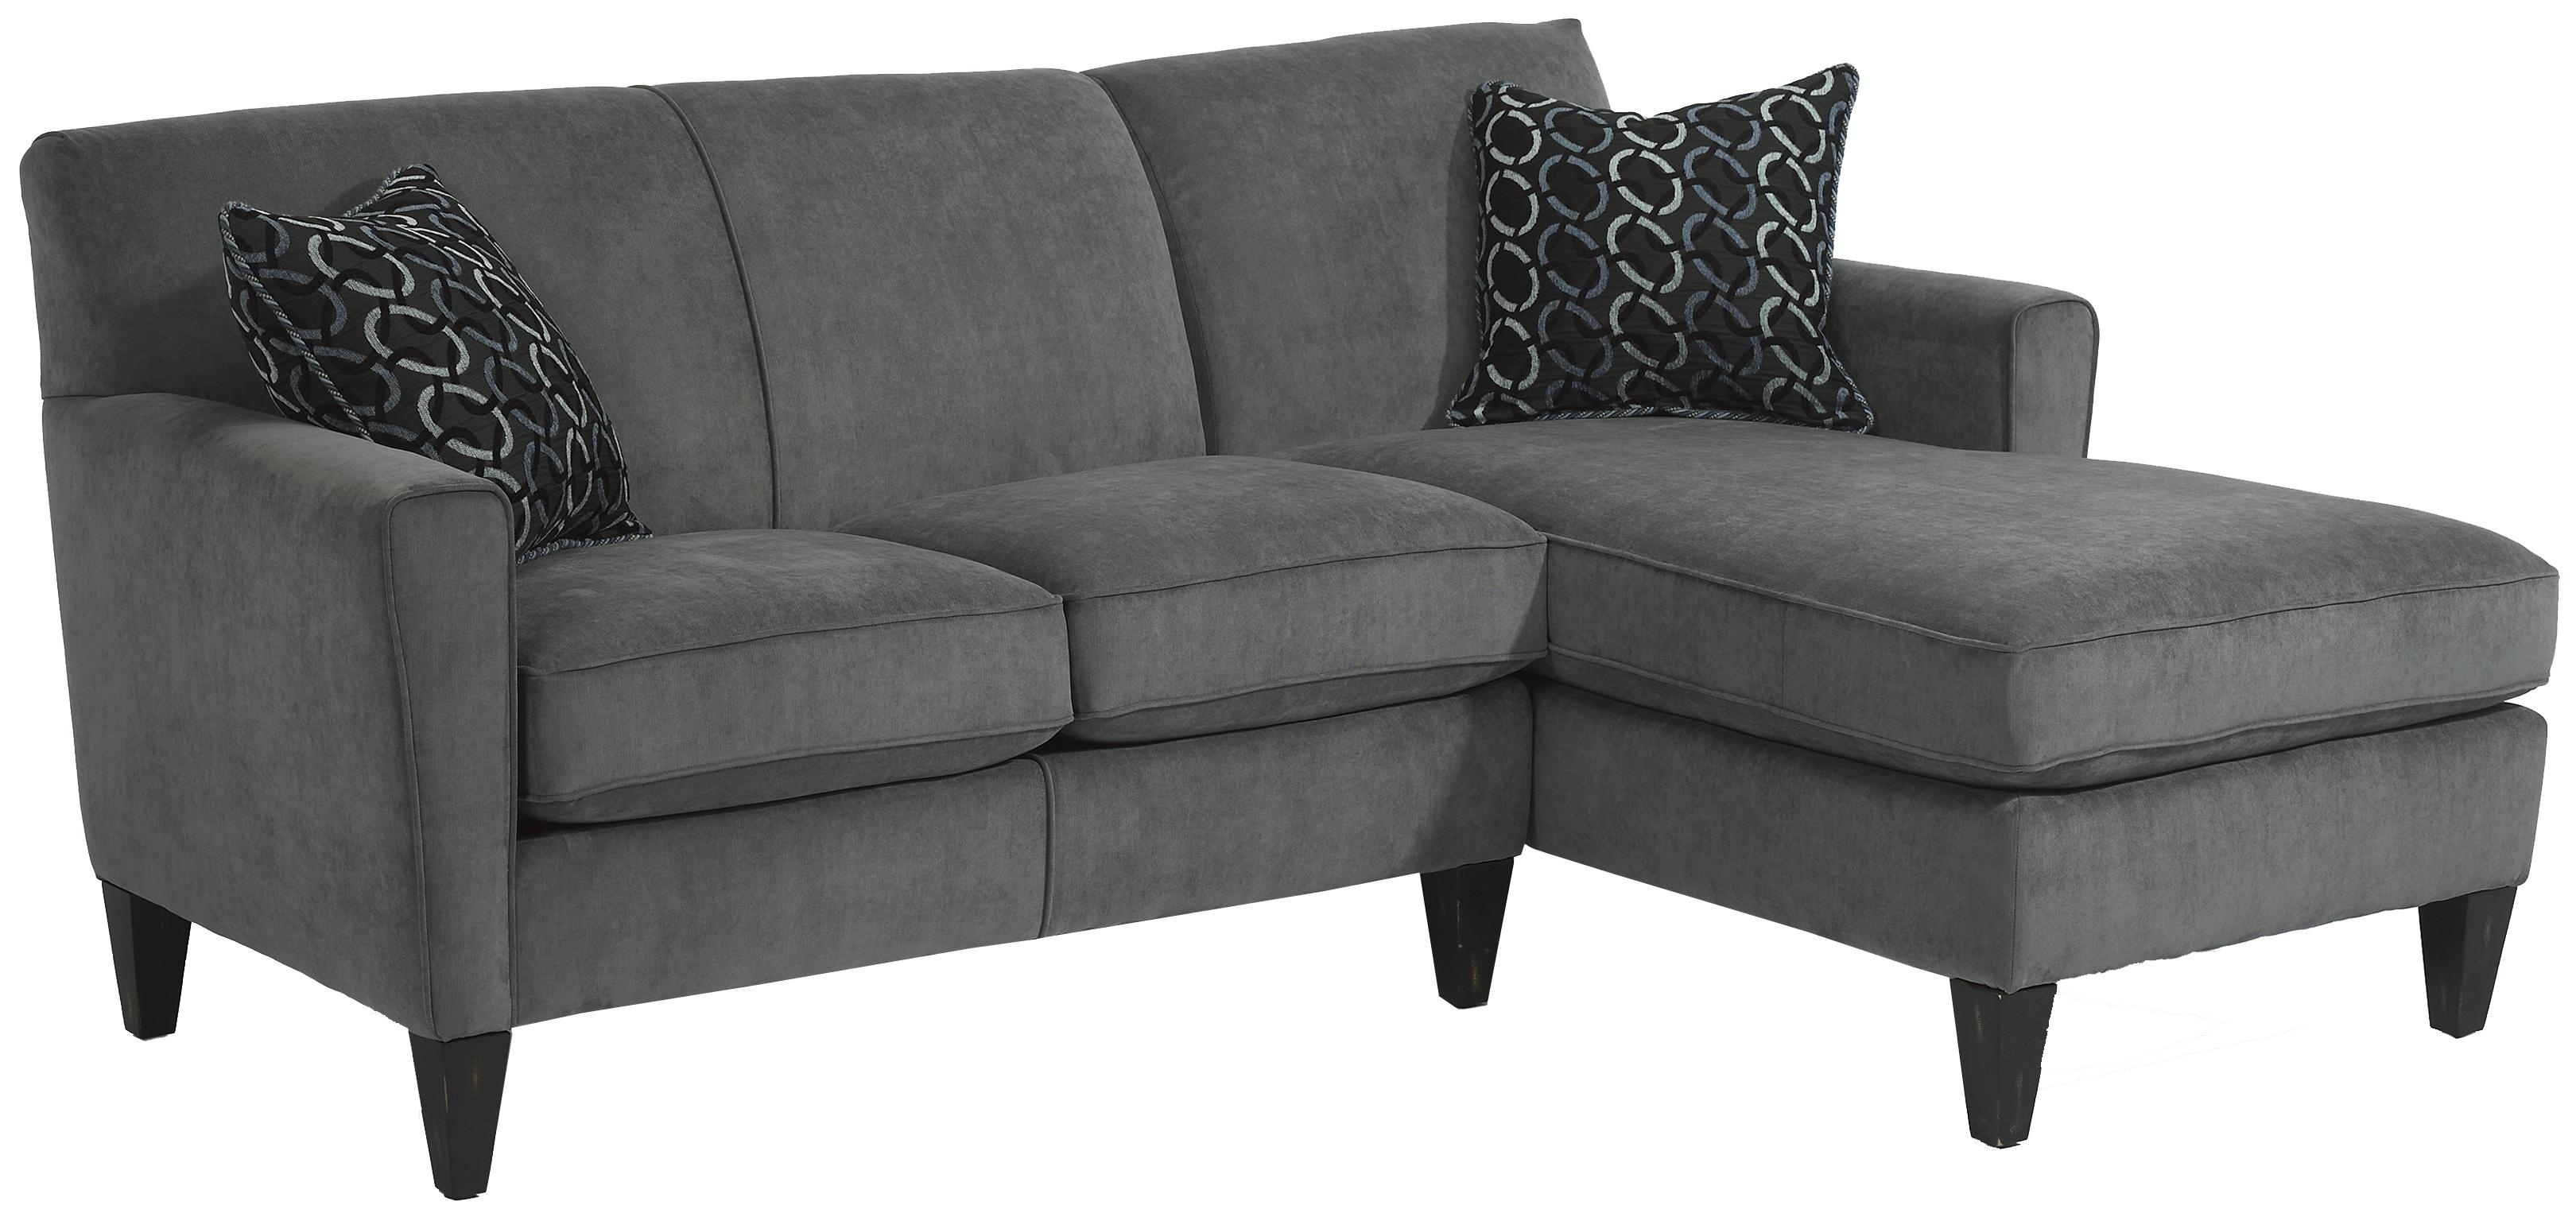 Flexsteel Digby Contemporary Sectional Sofa With Raf Chaise - Ahfa with regard to Norfolk Grey 3 Piece Sectionals With Raf Chaise (Image 13 of 30)